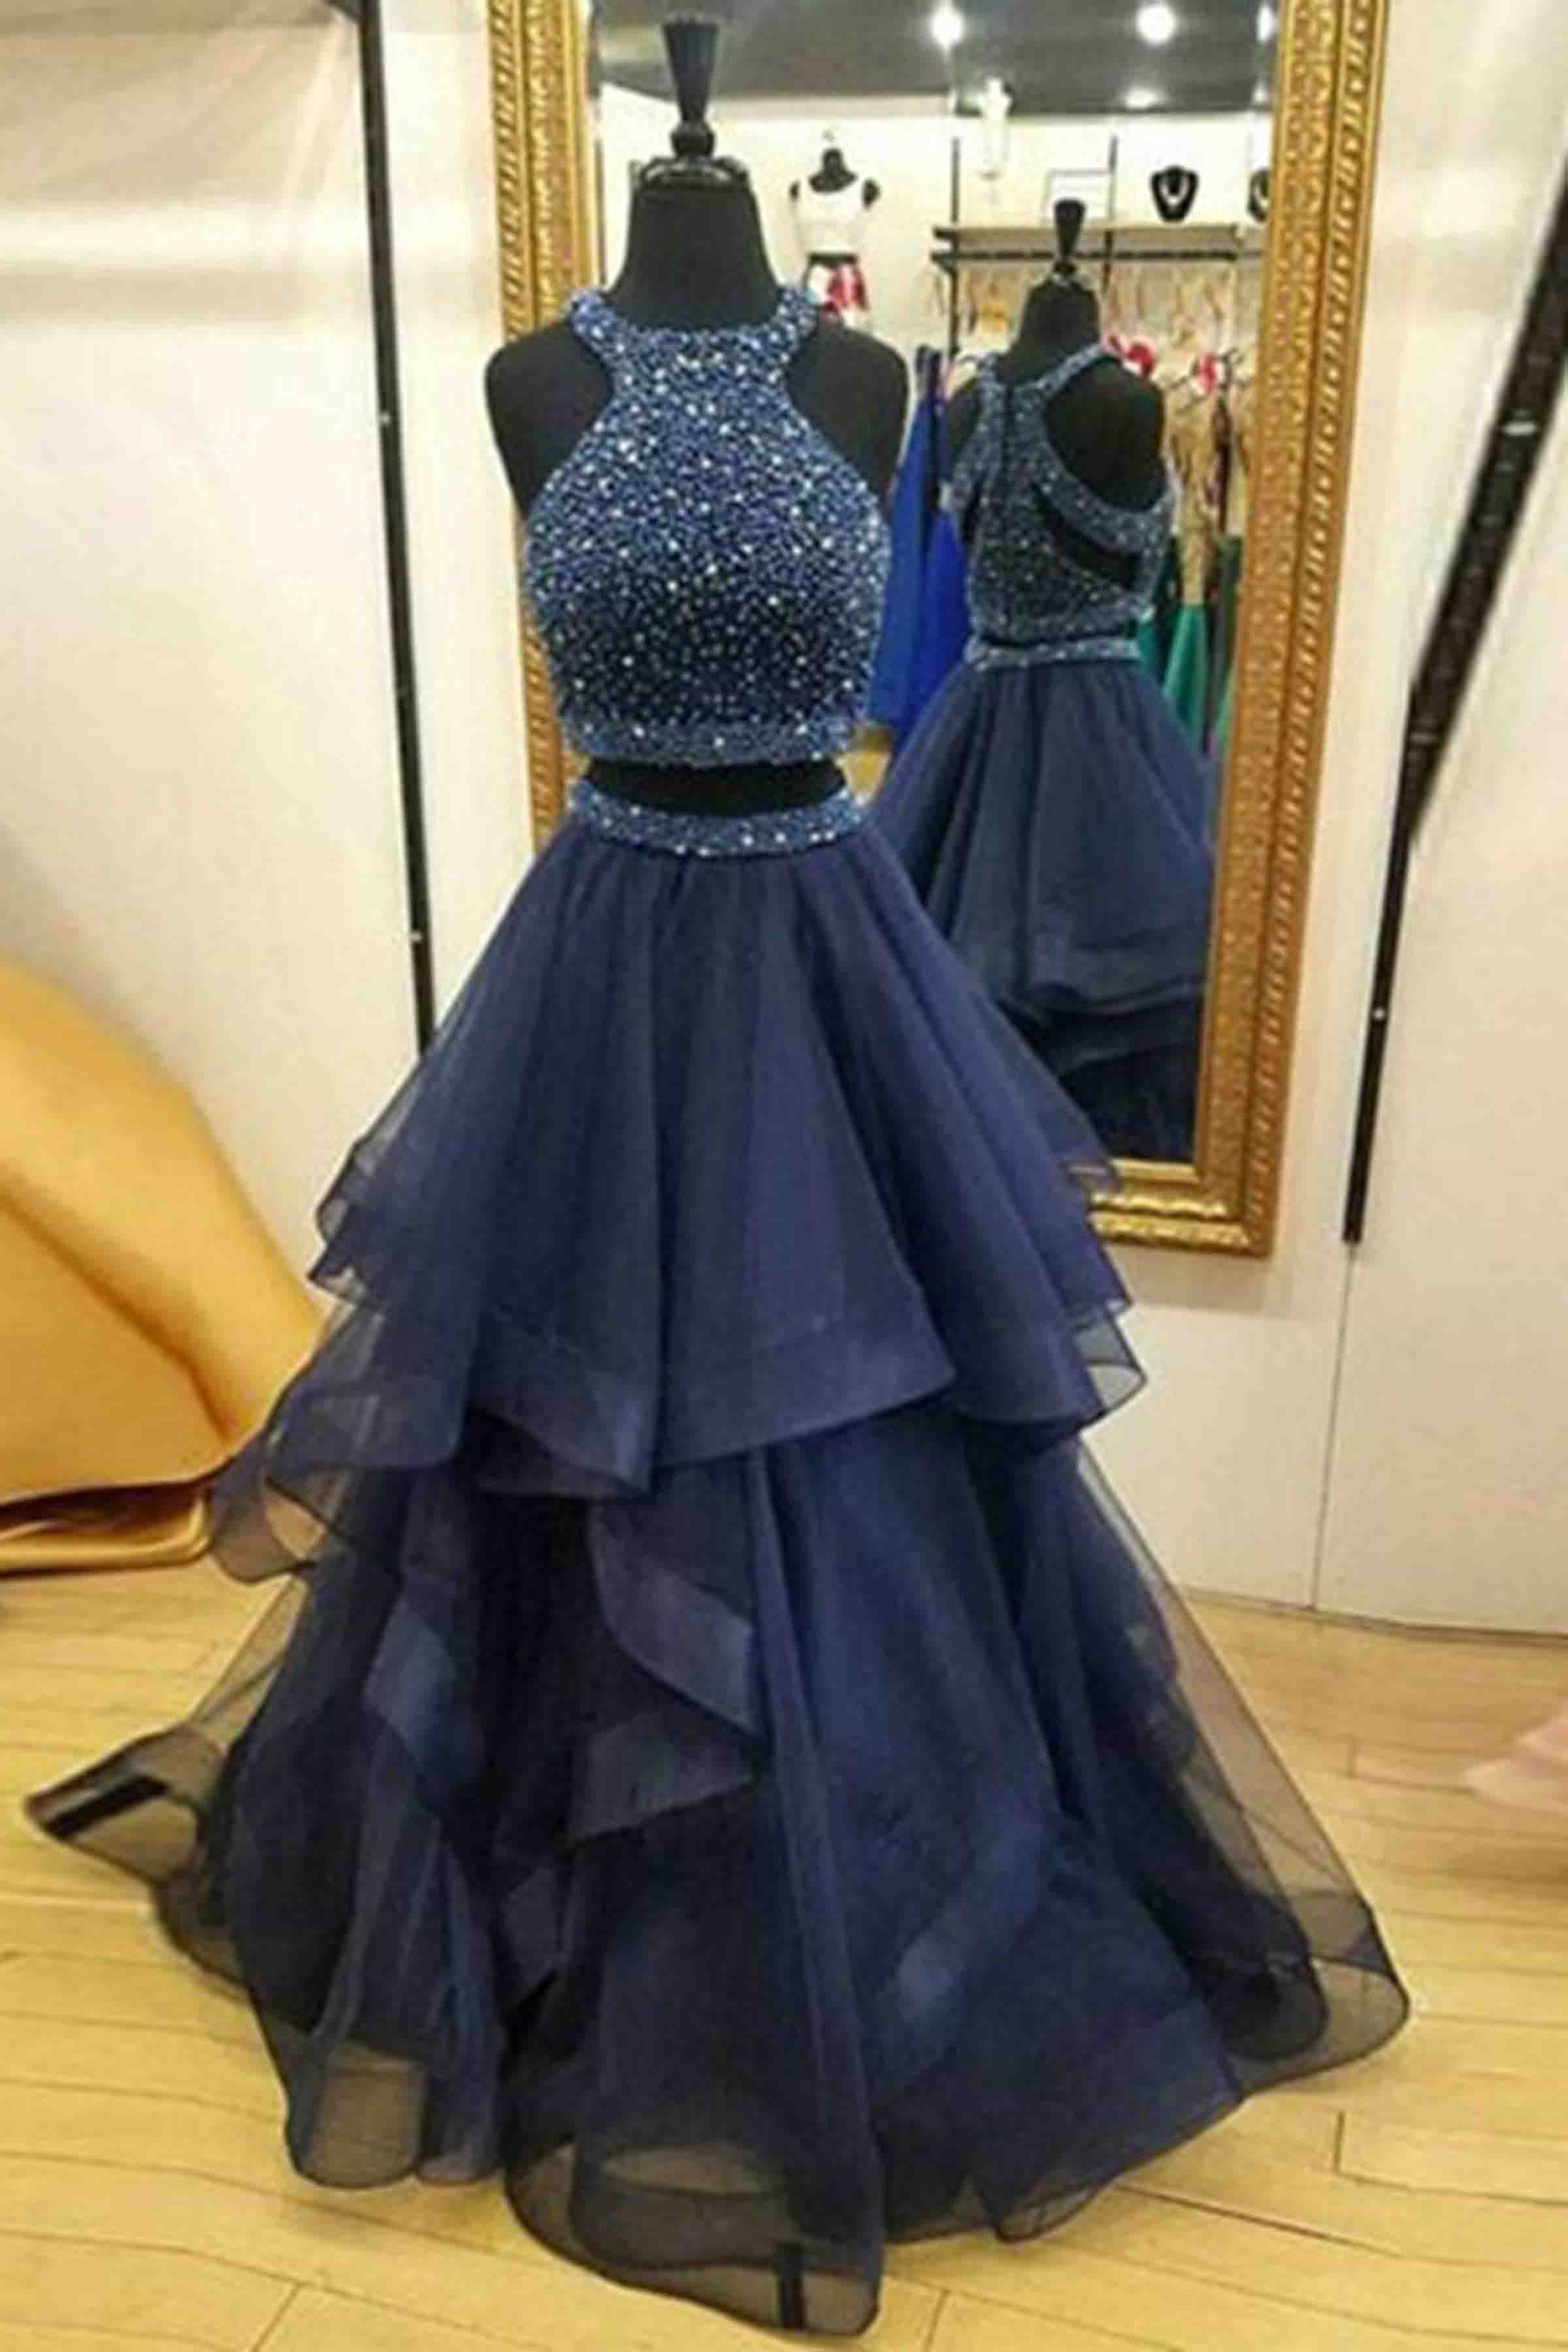 Beaded Dark Blue Organza Prom Dress Two Pieces Prom Dress Cute Halter Prom Dress For Teens Cutepr Prom Dresses Blue Cute Prom Dresses Prom Dresses For Teens [ 3600 x 2400 Pixel ]